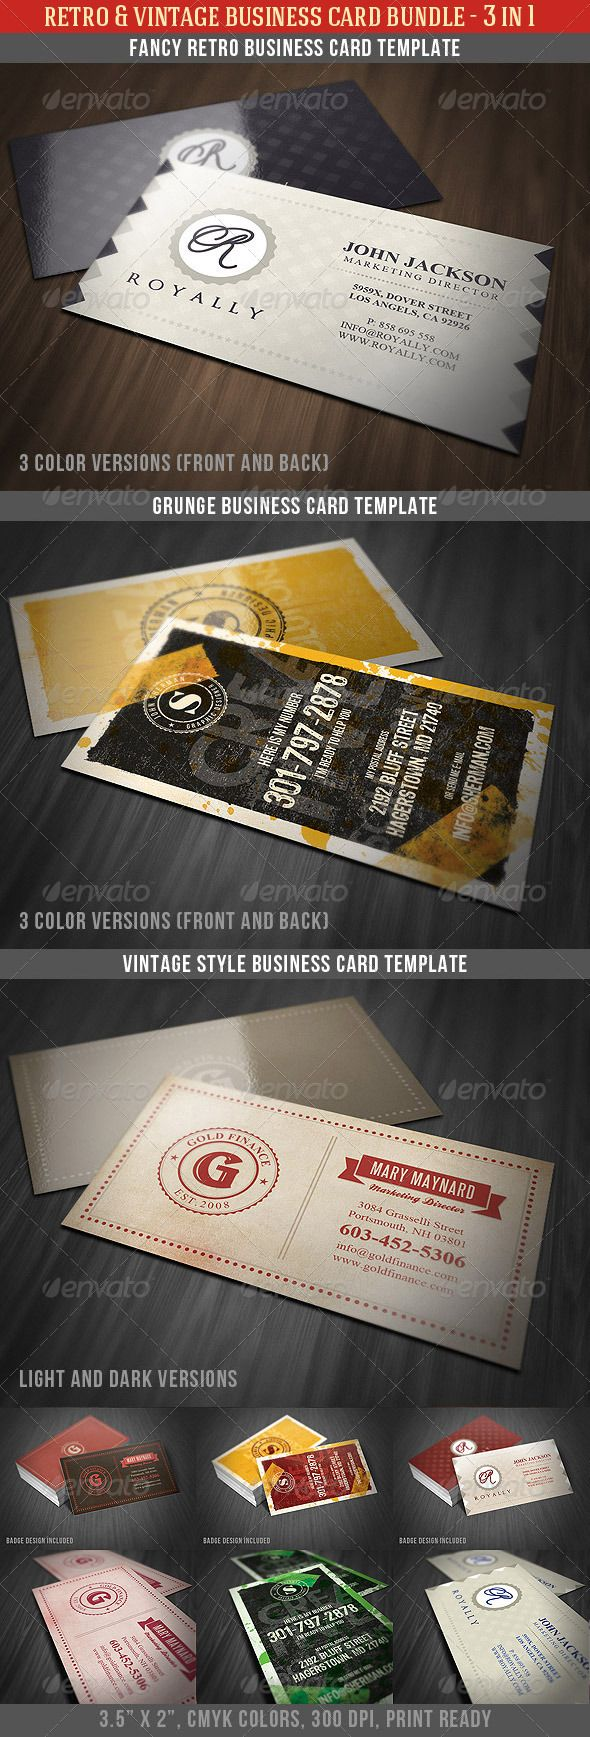 131 best business cards images on pinterest graphics business 131 best business cards images on pinterest graphics business cards and cards magicingreecefo Gallery